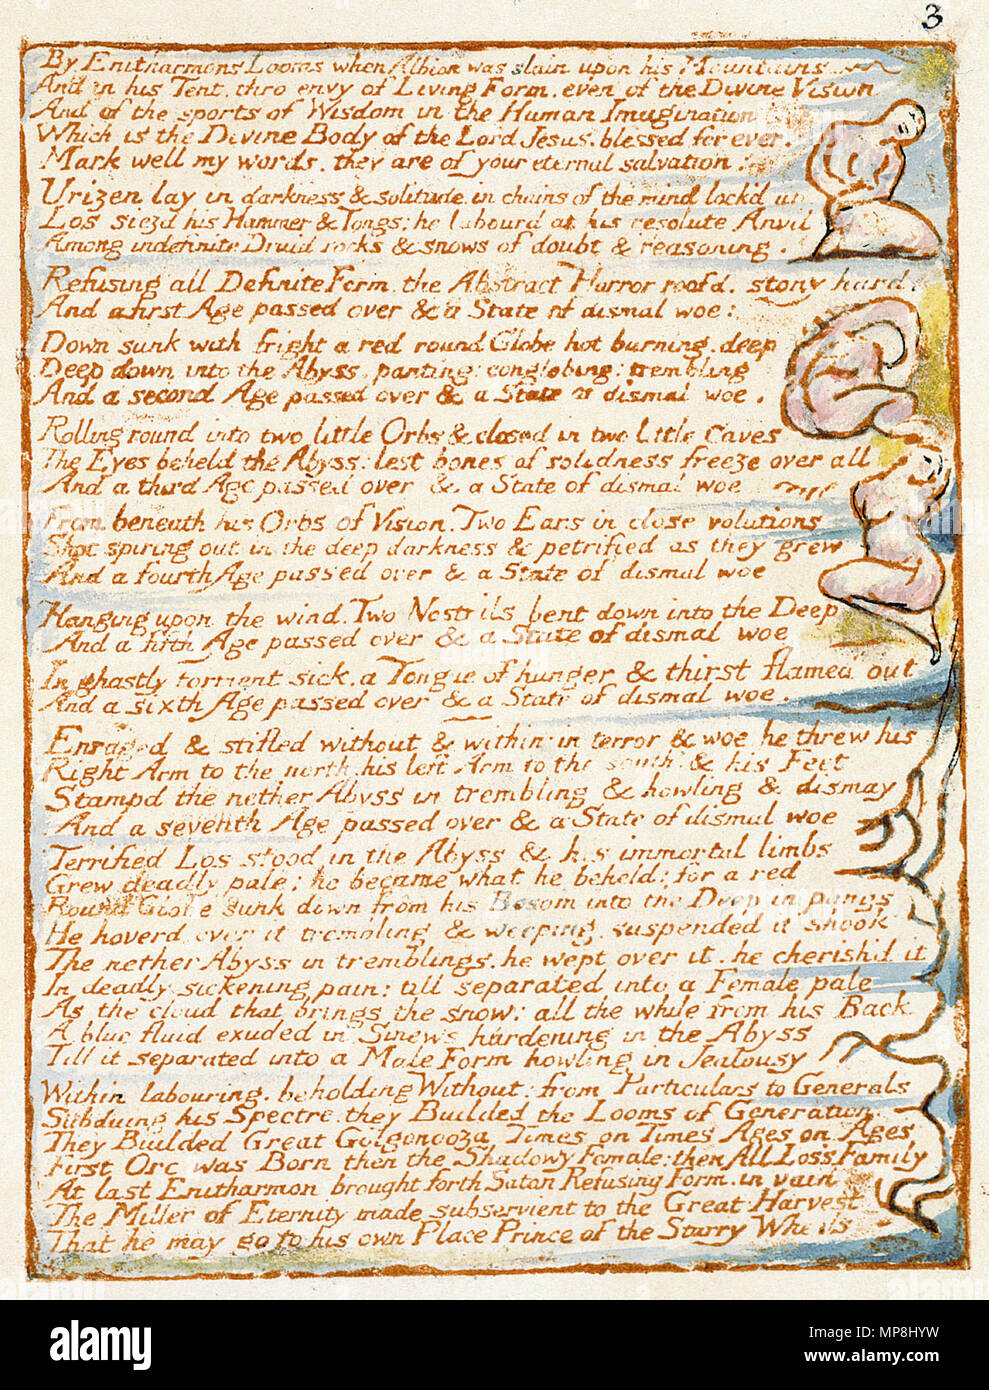 . English: Milton a Poem, copy D, object 3 Bentley b, Erdman 3, Keynes b) . 26 March 2007, 09:01:17.   William Blake (1757–1827)   Alternative names W. Blake; Uil'iam Bleik  Description British painter, poet, writer, theologian, collector and engraver  Date of birth/death 28 November 1757 12 August 1827  Location of birth/death Broadwick Street Charing Cross  Work location London  Authority control  : Q41513 VIAF:54144439 ISNI:0000 0001 2096 135X ULAN:500012489 LCCN:n78095331 NLA:35019221 WorldCat     This is a faithful photographic reproduction of a two-dimensional, public domain wo - Stock Image